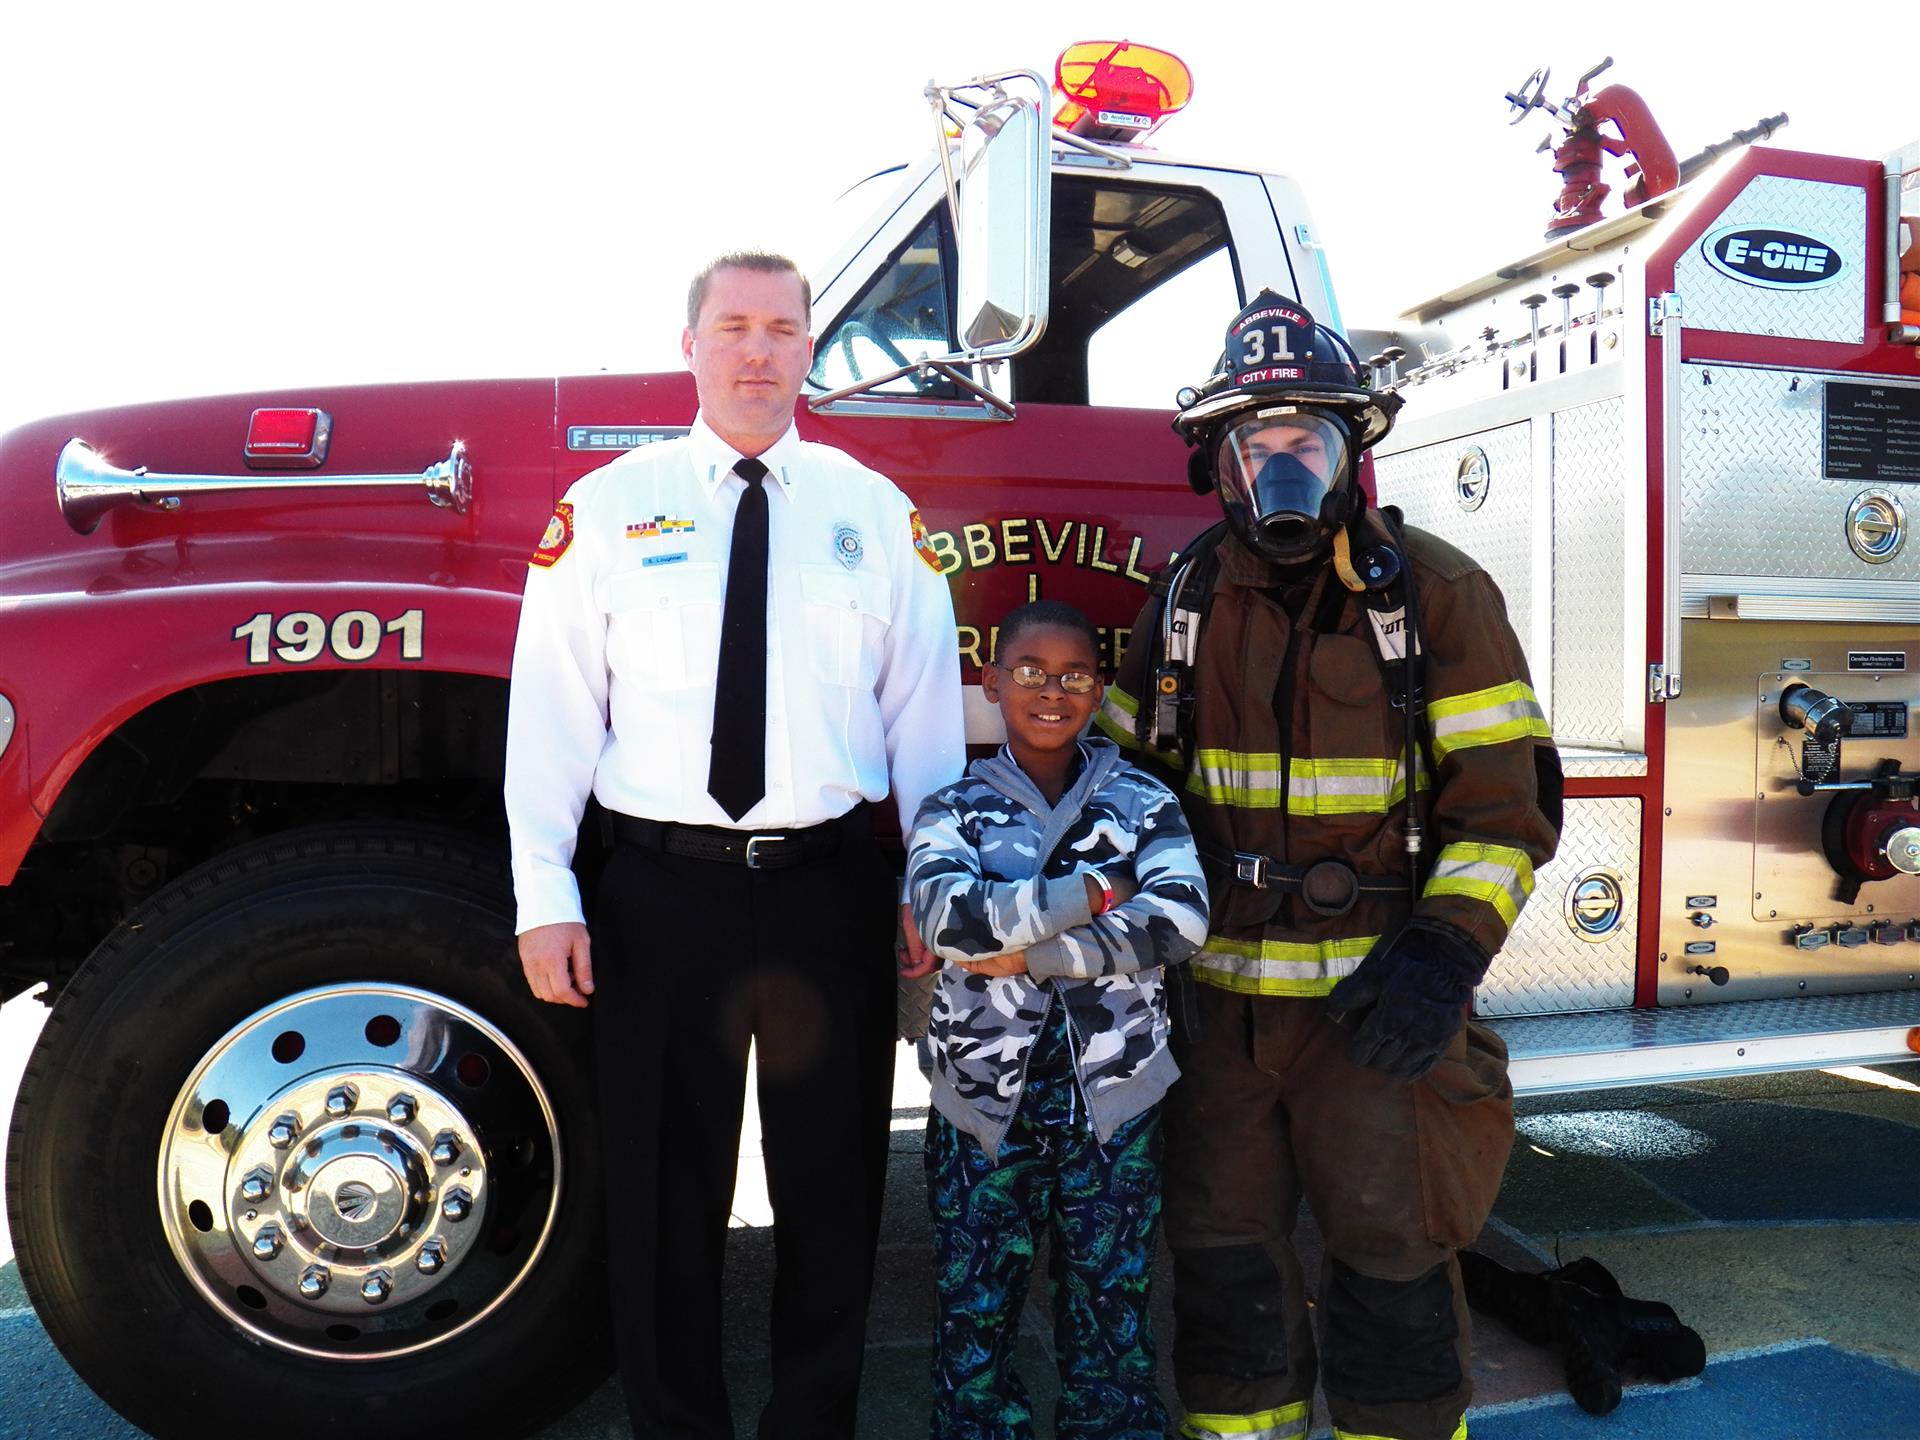 Firefighters with child